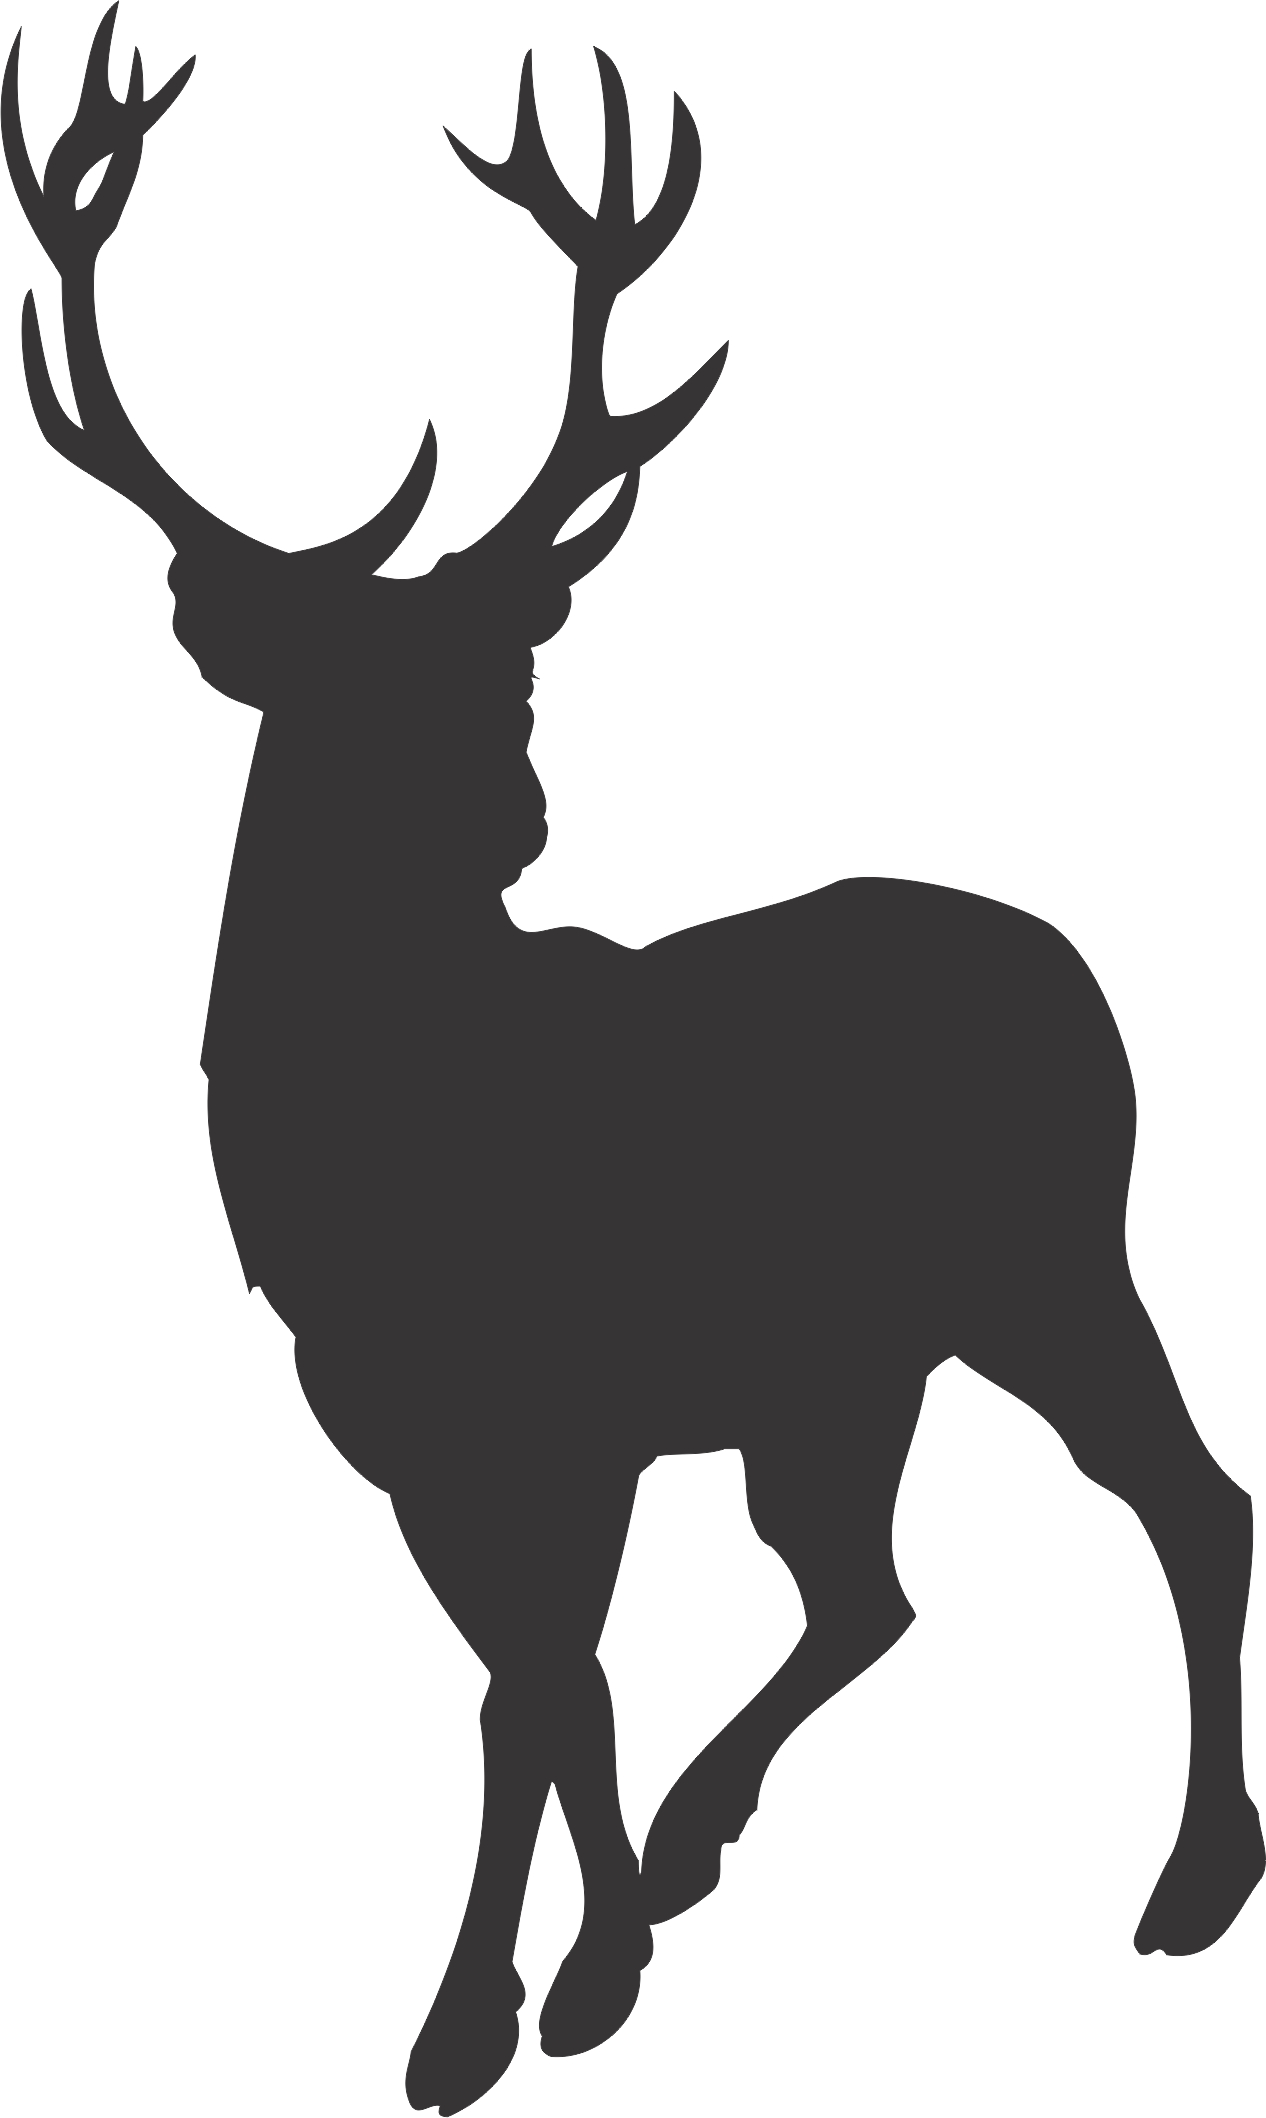 Stag Silhouette.